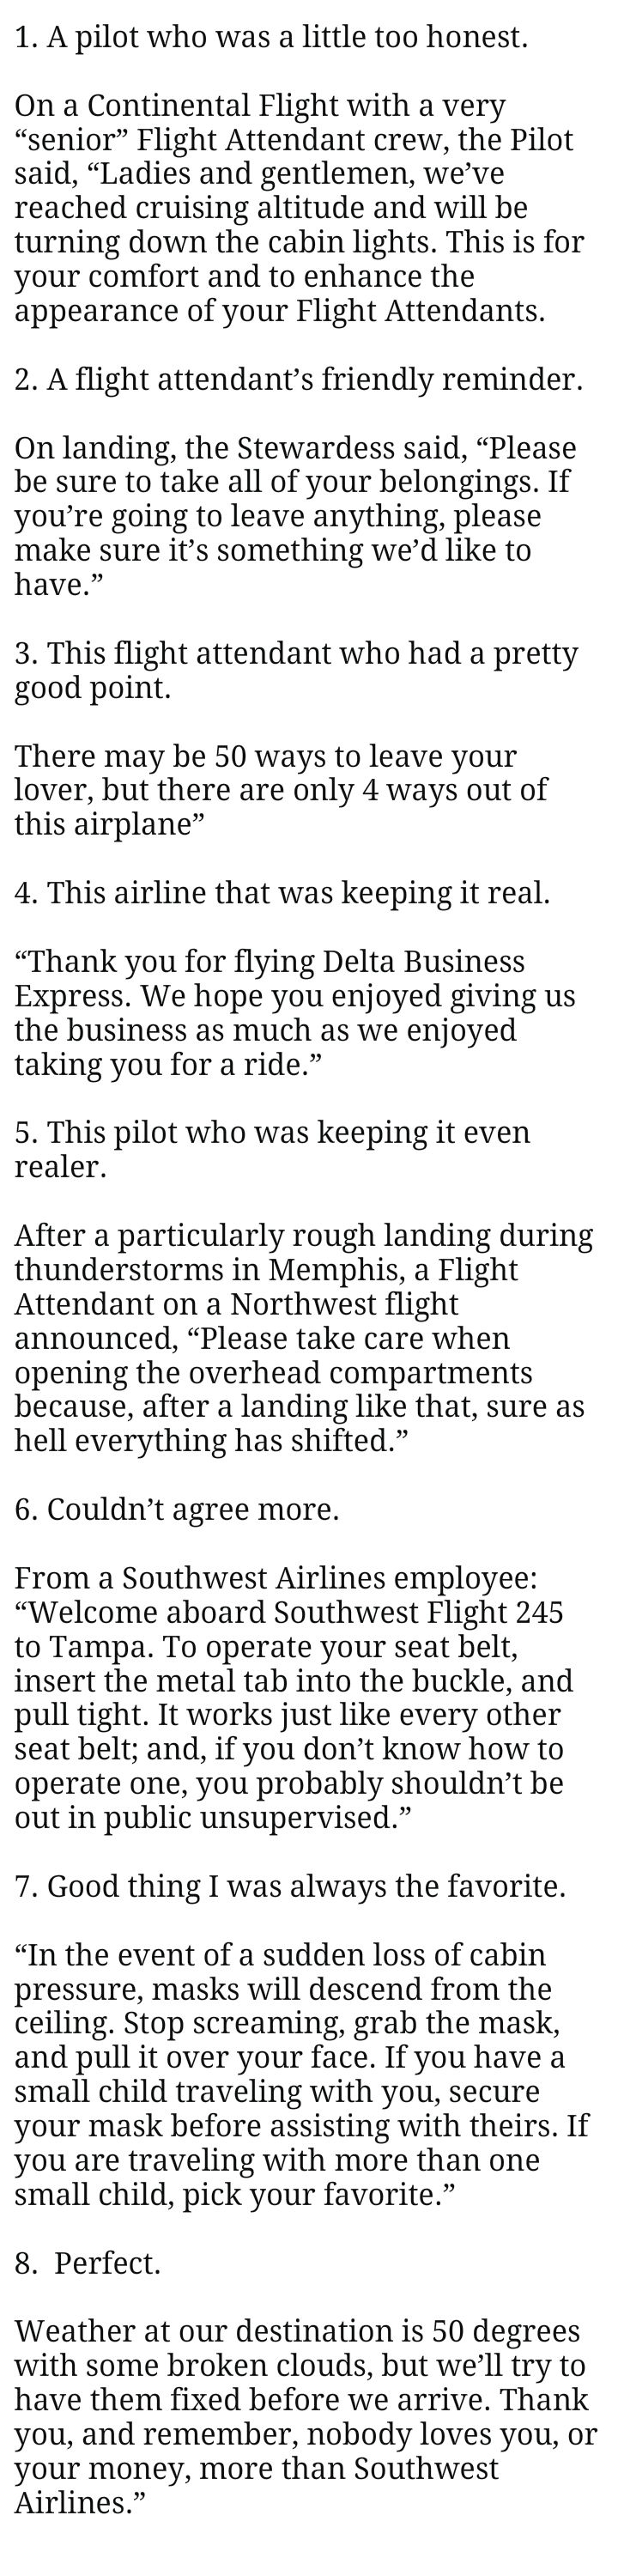 """""""Overheard on an American Airlines flight into Amarillo, Texas, on a particularly windy and bumpy day: During the final approach, the Captain was really having to fight it. After an extremely hard landing, the Flight Attendant said, """"ladies and Gentlemen, welcome to..."""""""